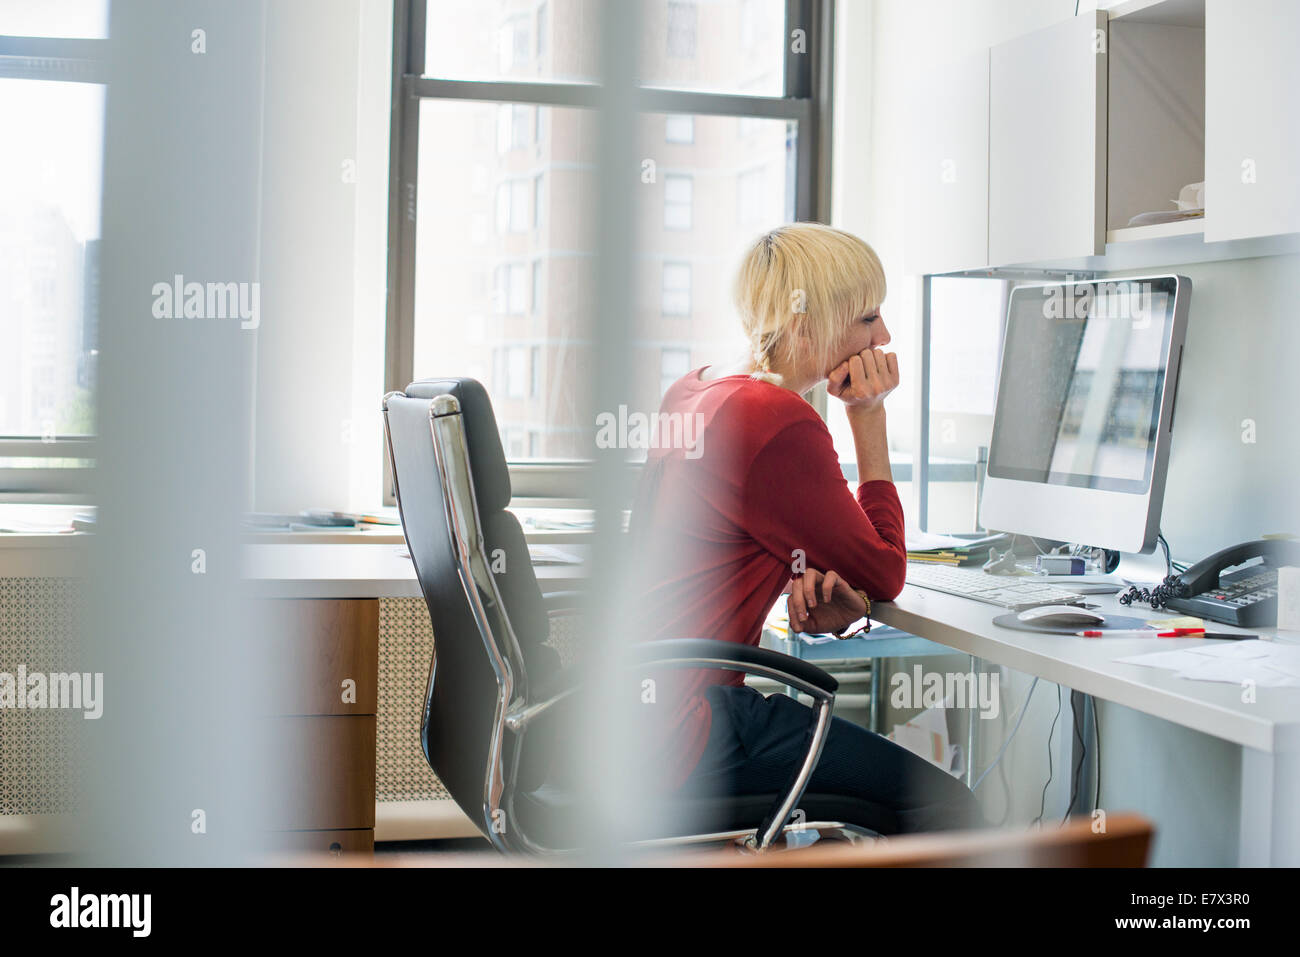 Office life. A woman sitting at a desk using a computer, looking intently at the screen. - Stock Image